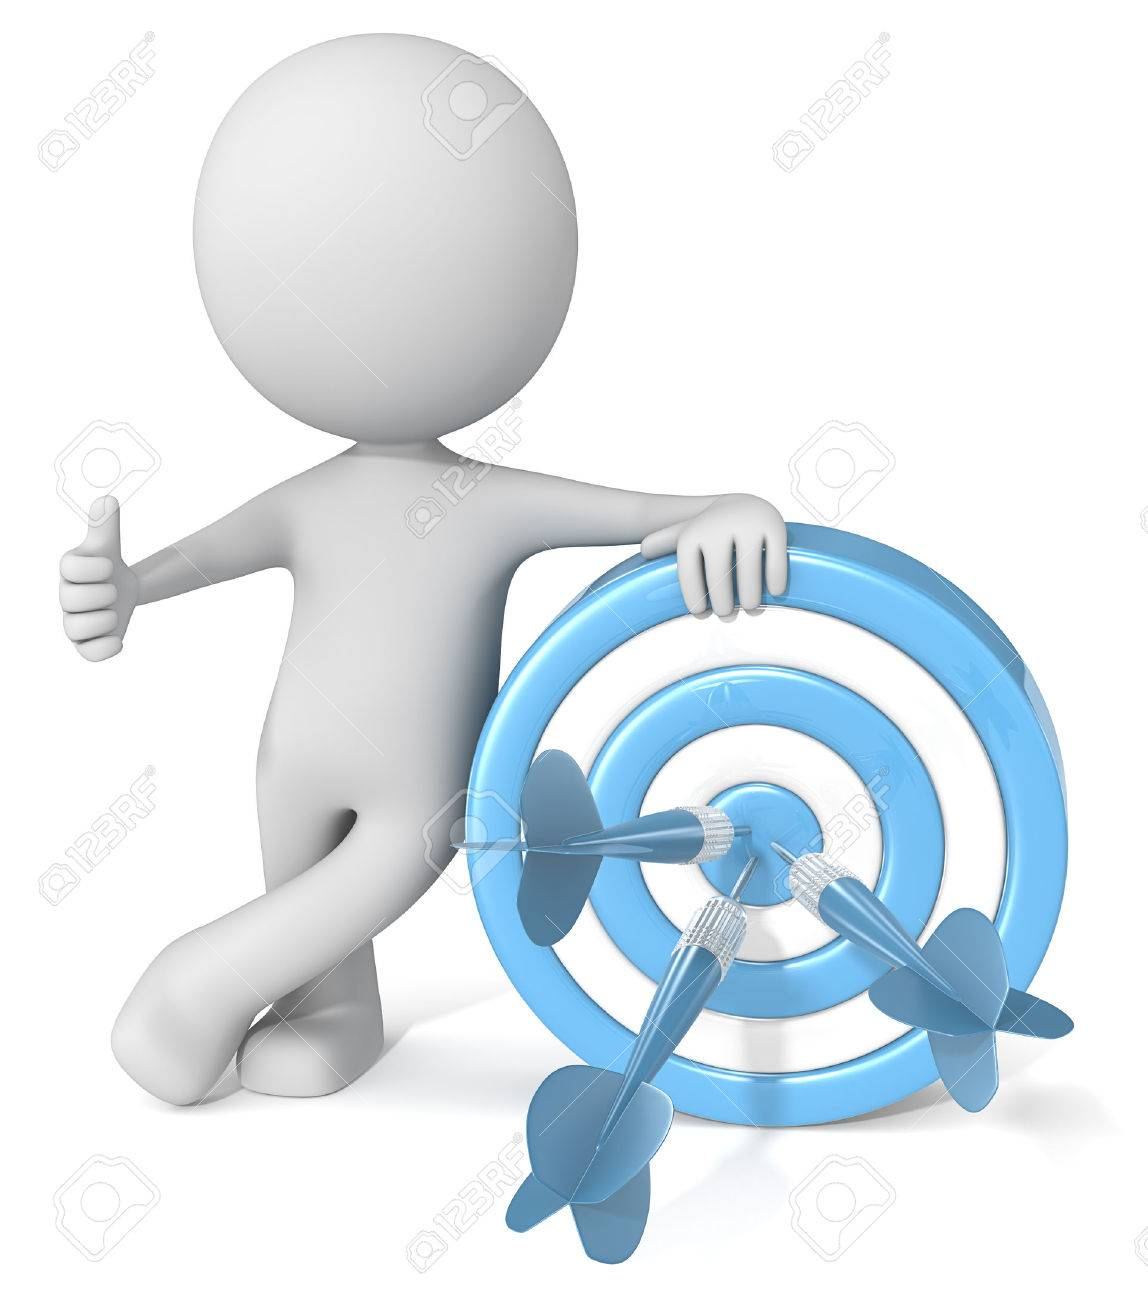 Thumbs up Target. Dude 3D character giving thumbs up holding blue dartboard with blue darts. Standard-Bild - 50396698